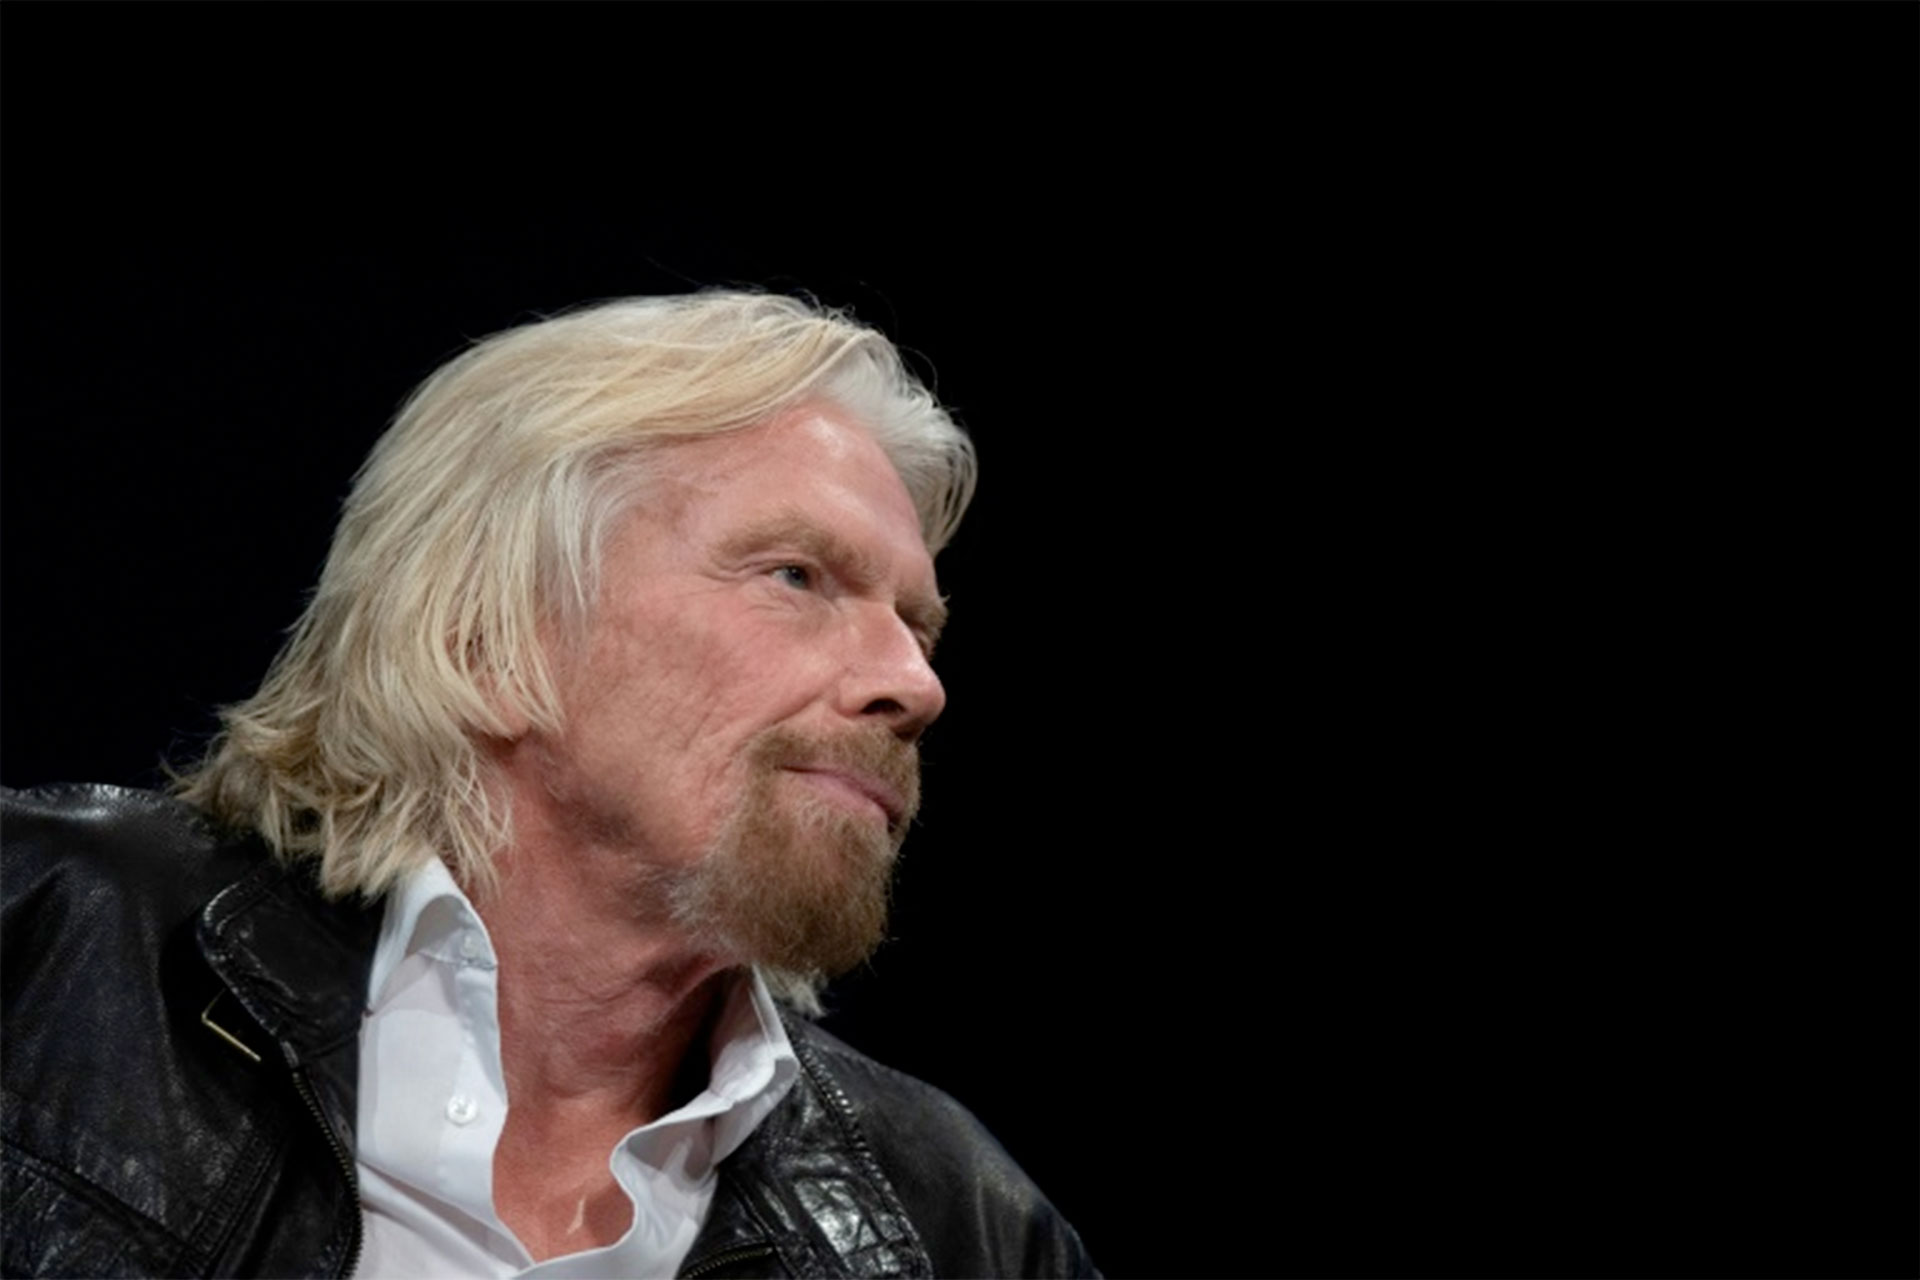 El fundador de Virgin Galactic, Sir Richard Branson, el 7 de febrero de 2019, en Washington DC (AFP – Jim WATSON)